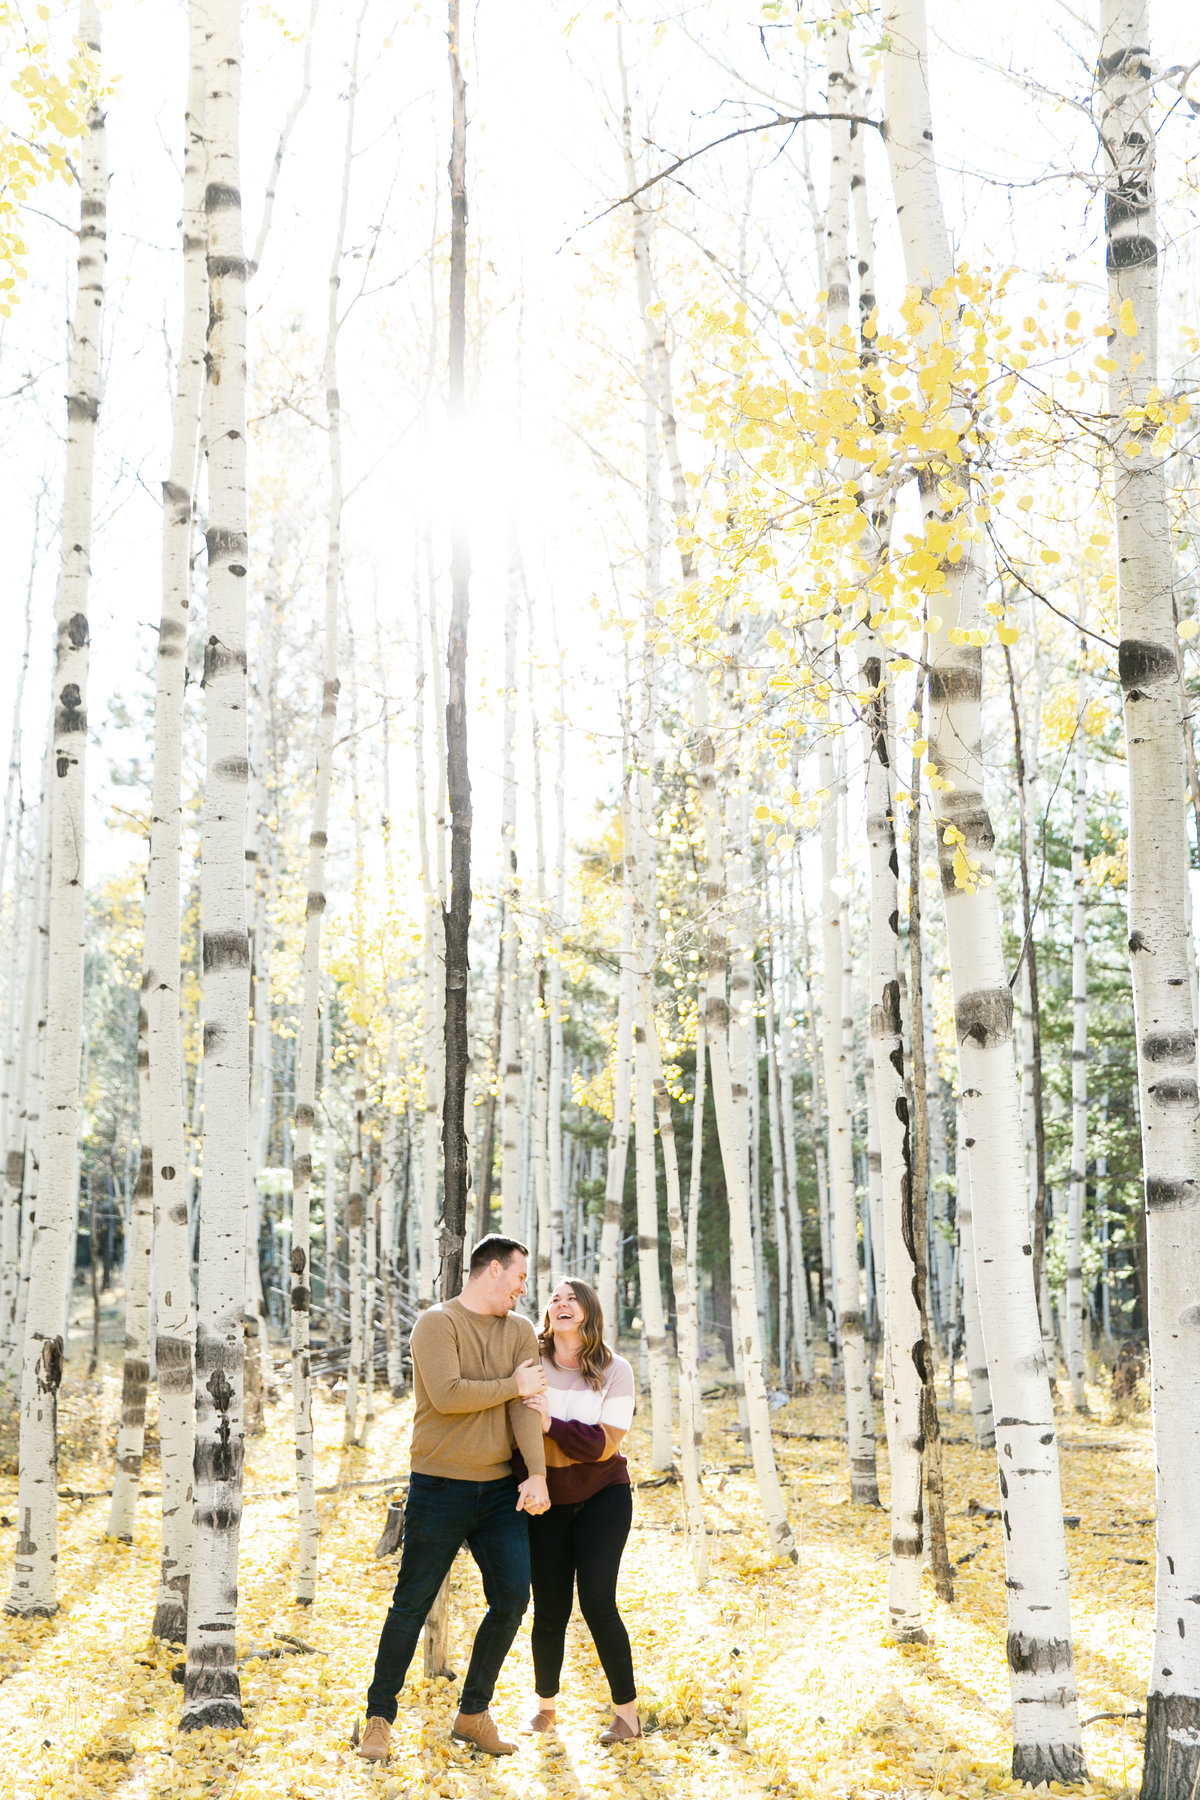 Karlie Colleen Photography - Flagstaff Arizona Engagement Photographer - Britt & Josh -10